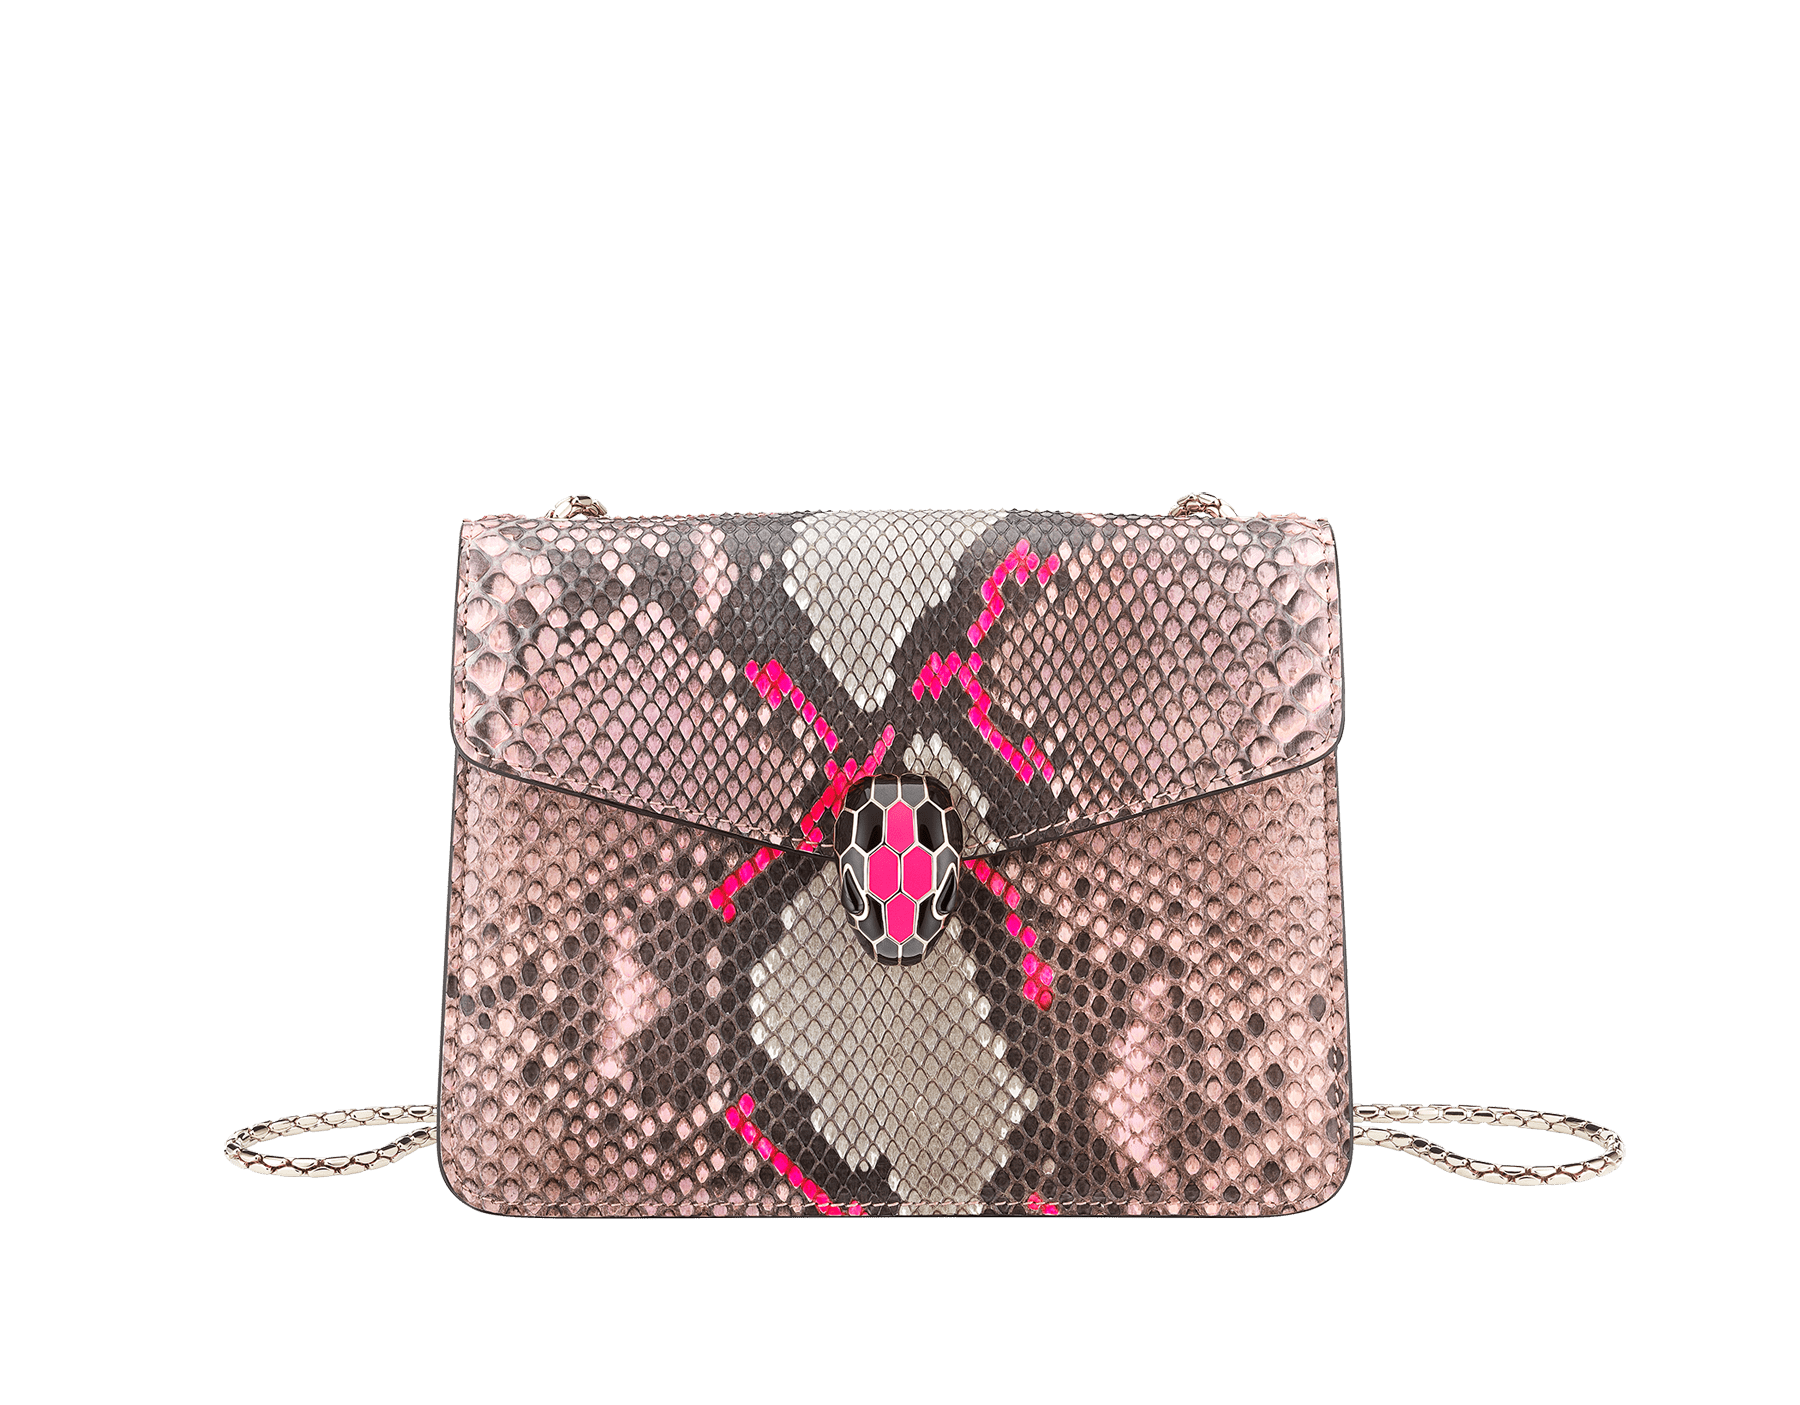 """Serpenti Forever"" crossbody bag in silky coral and flash amethyst Neon python skin. Iconic snake head closure in light gold plated brass enriched with black and flash amethyst enamel and black onyx eyes. 288953 image 1"